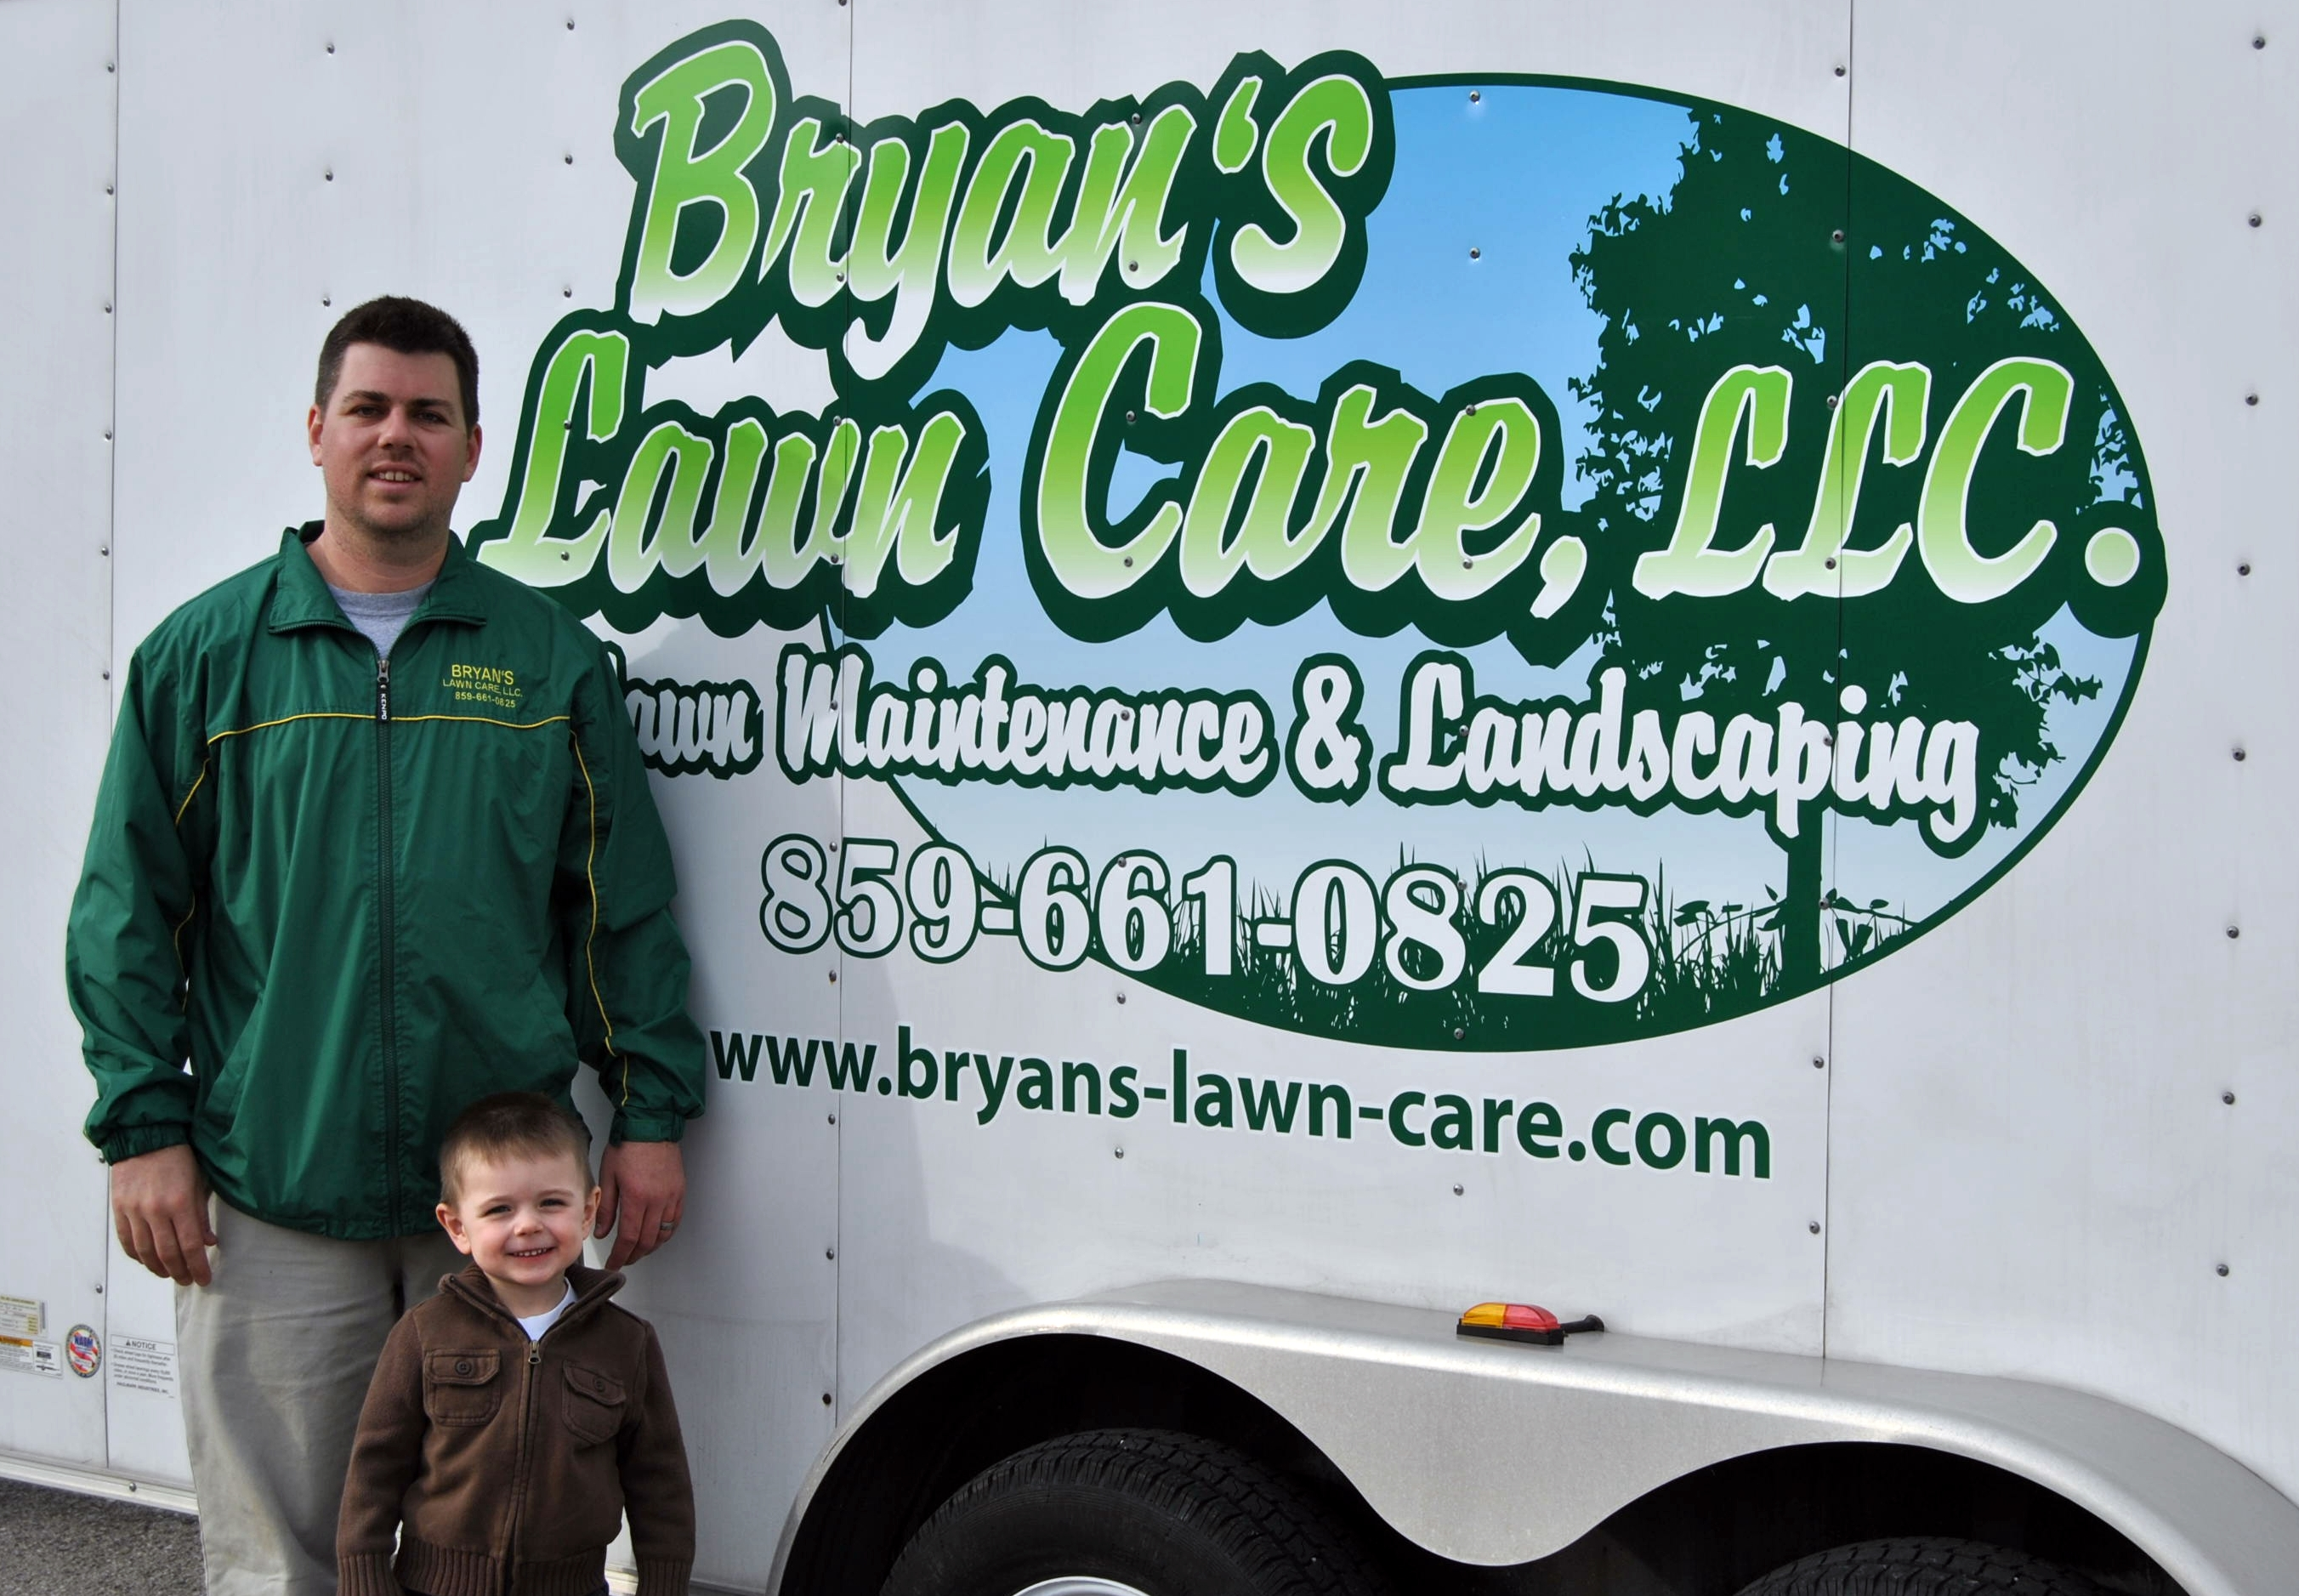 Bryan's Lawn Care